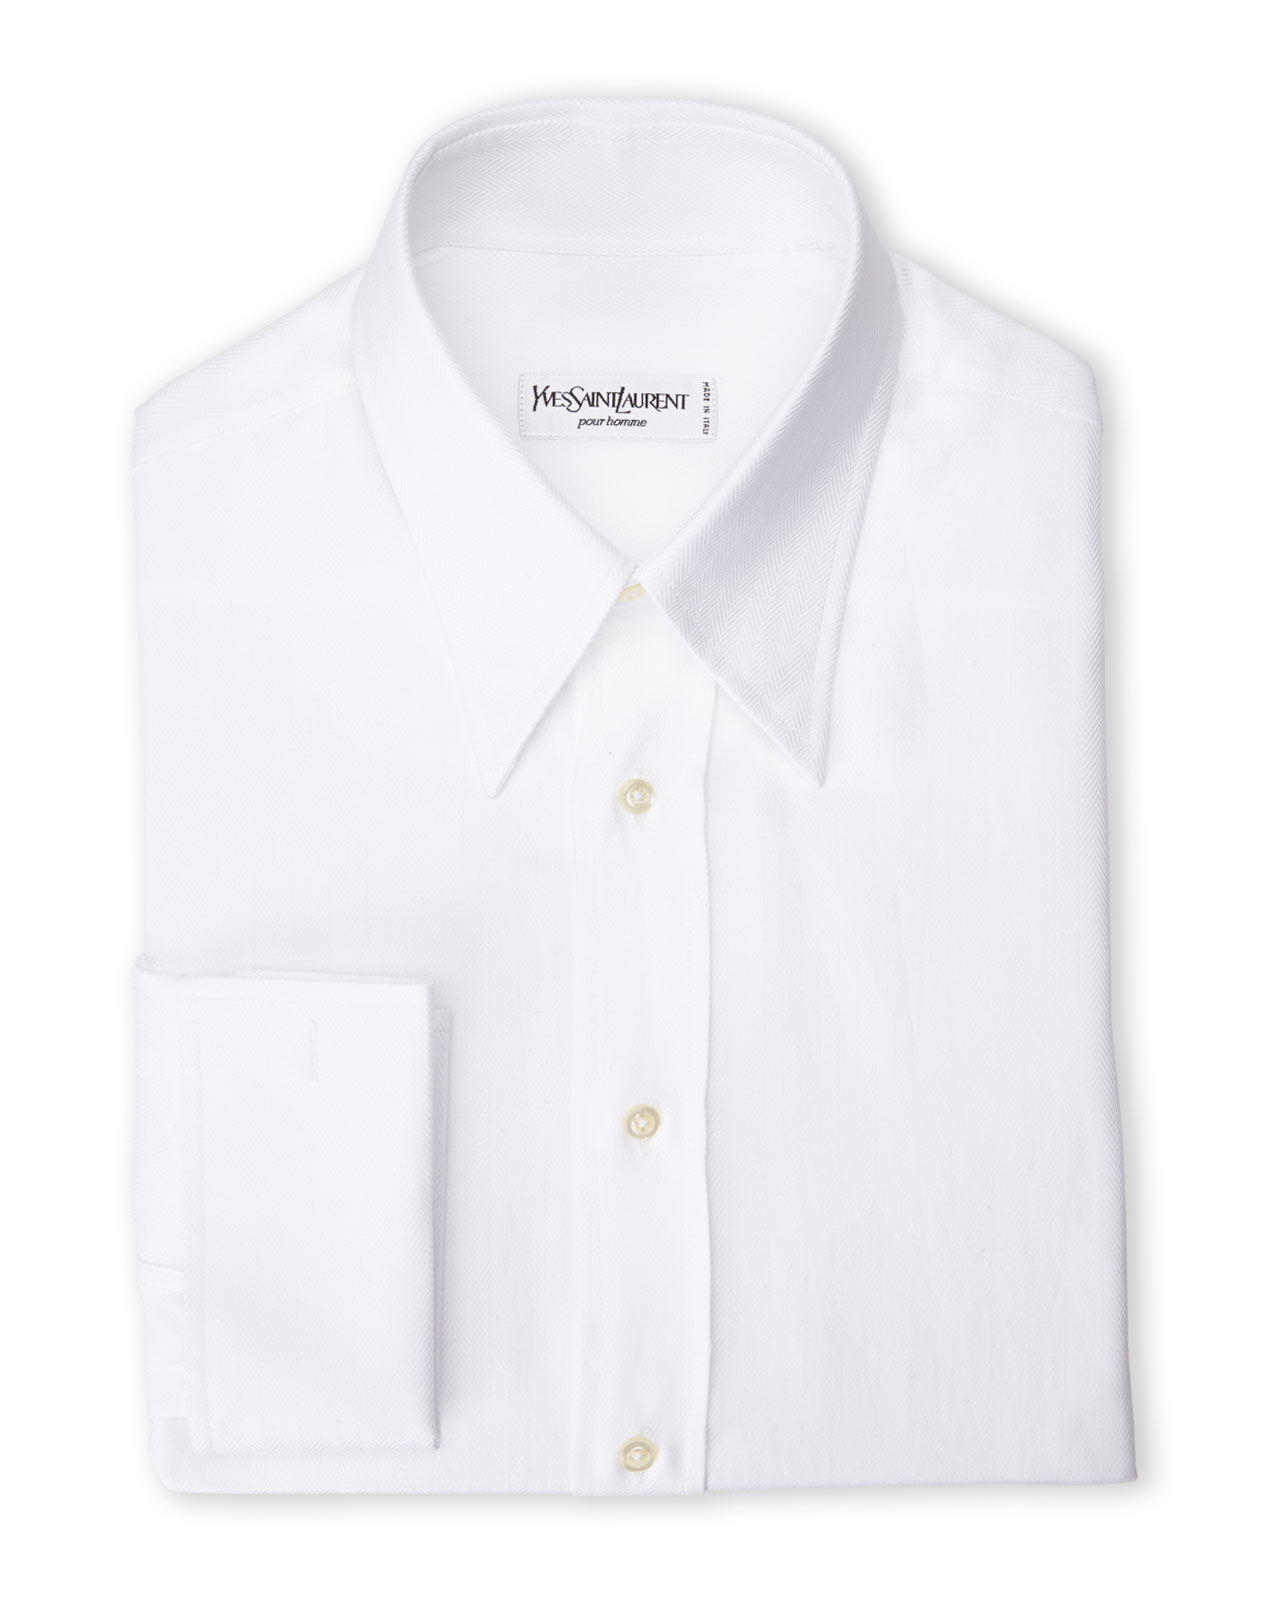 Saint Laurent White French Cuff Woven Dress Shirt In White